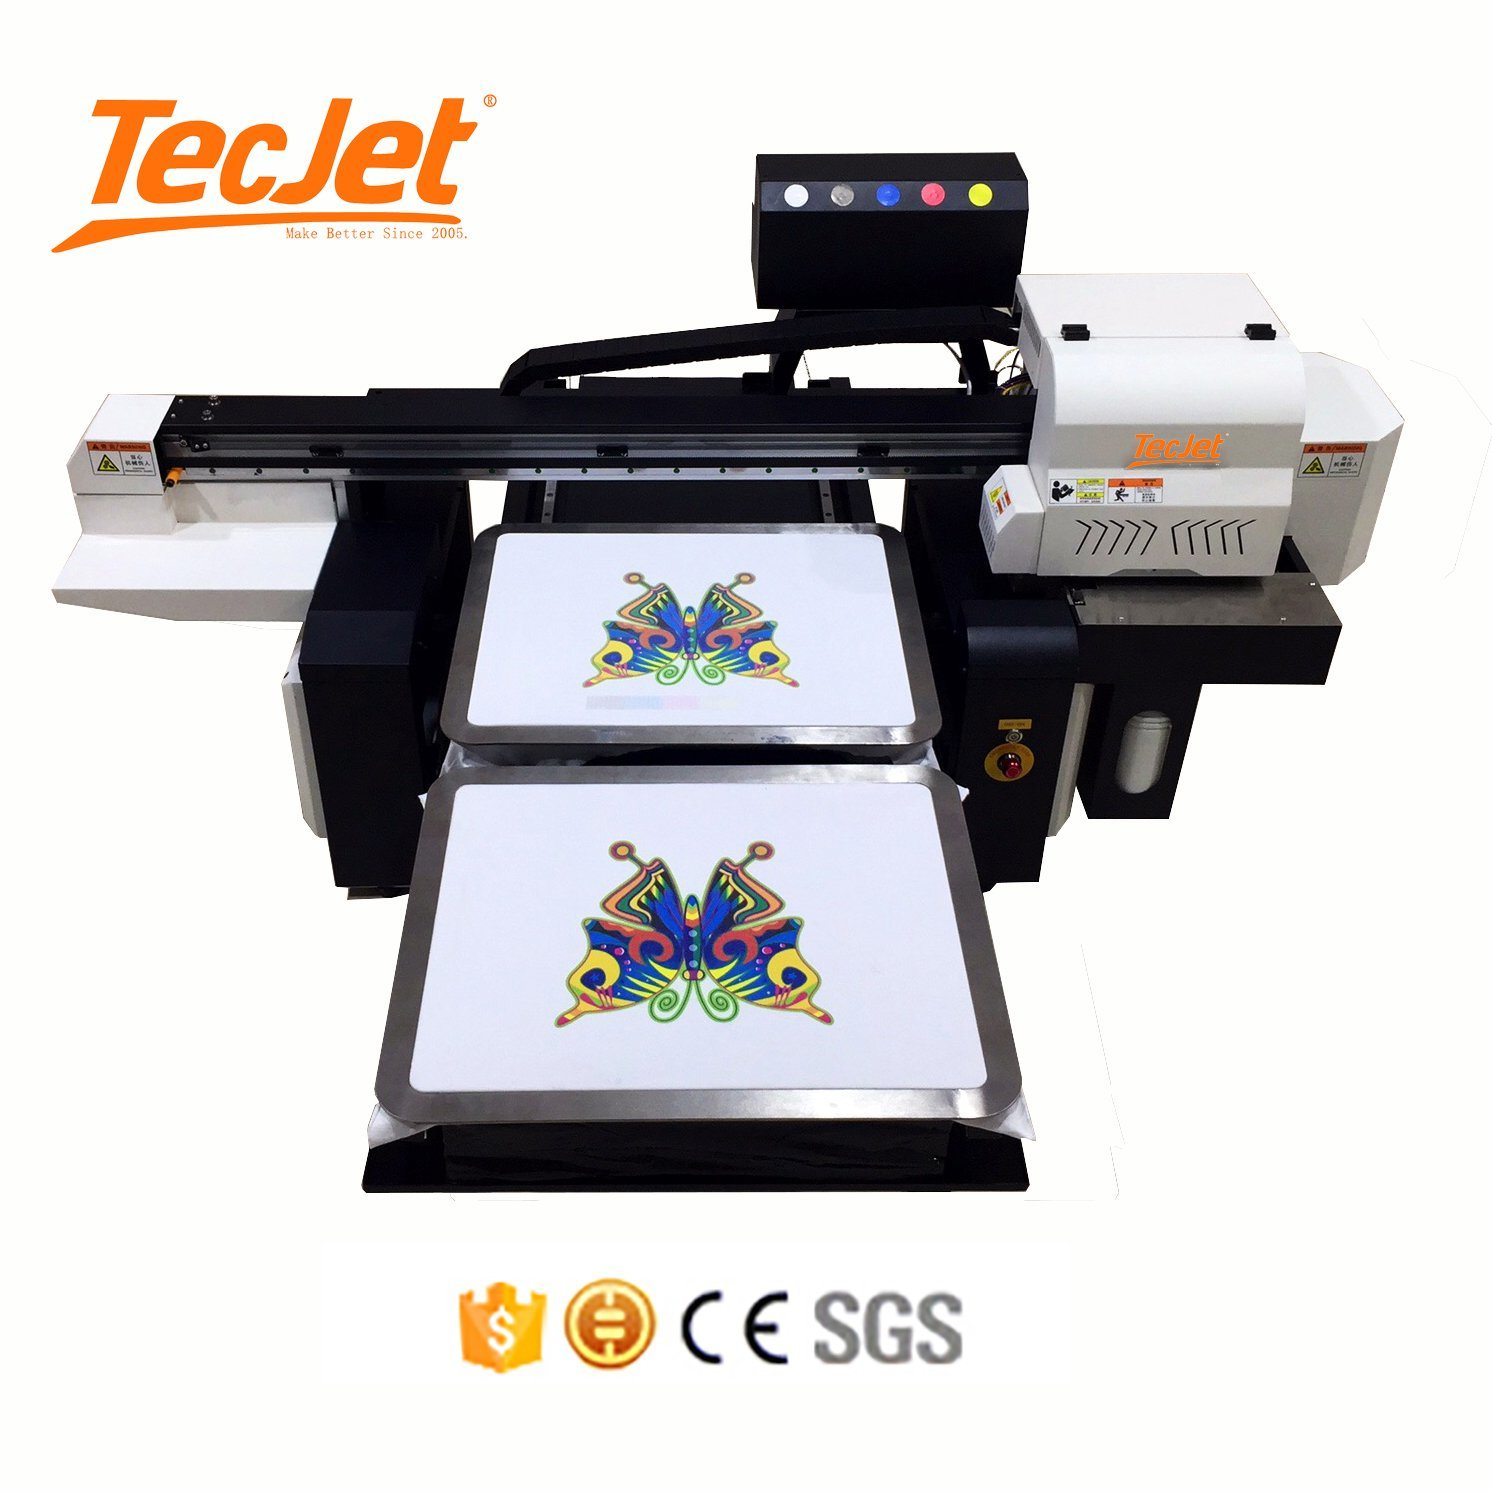 [Hot Item] Tecjet Price Digital T-Shirt Printing Machine 6090 DTG Printer